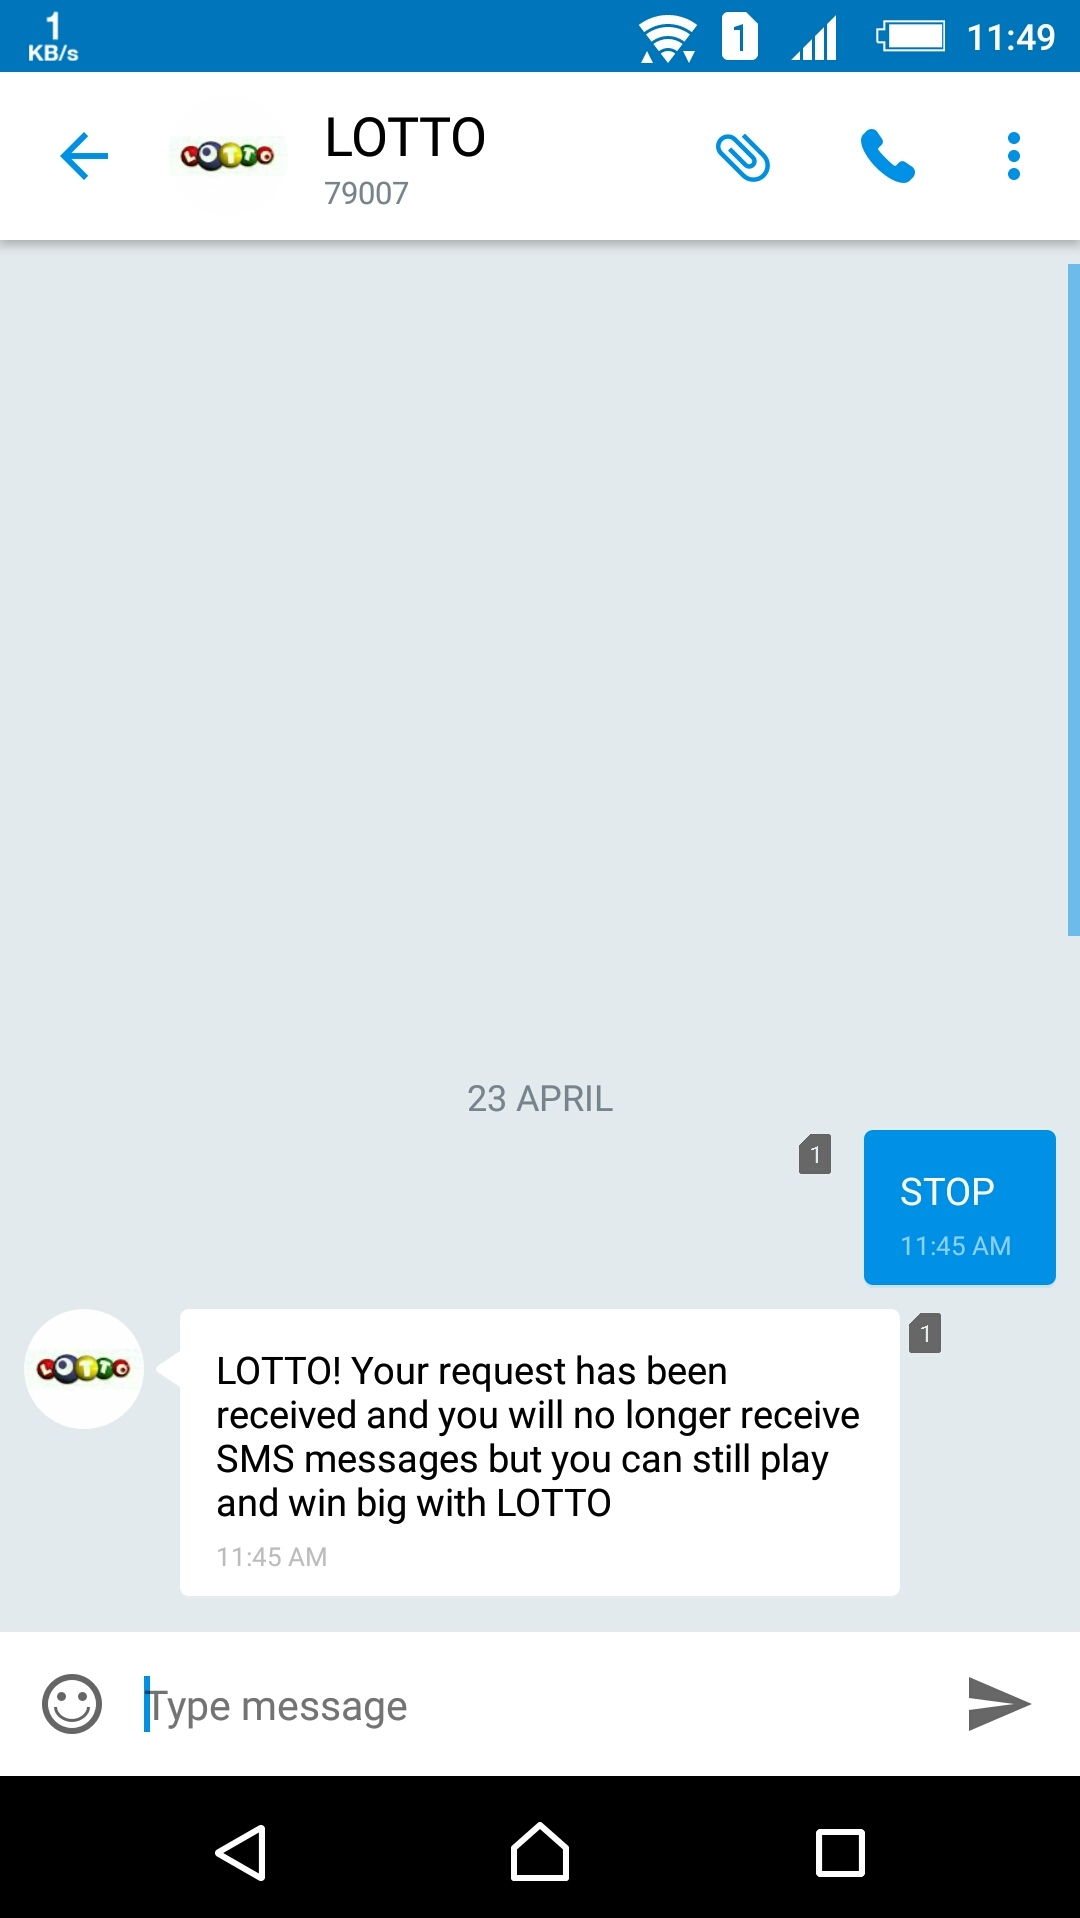 How to stop those annoying LOTTO SMS texts - Hacks